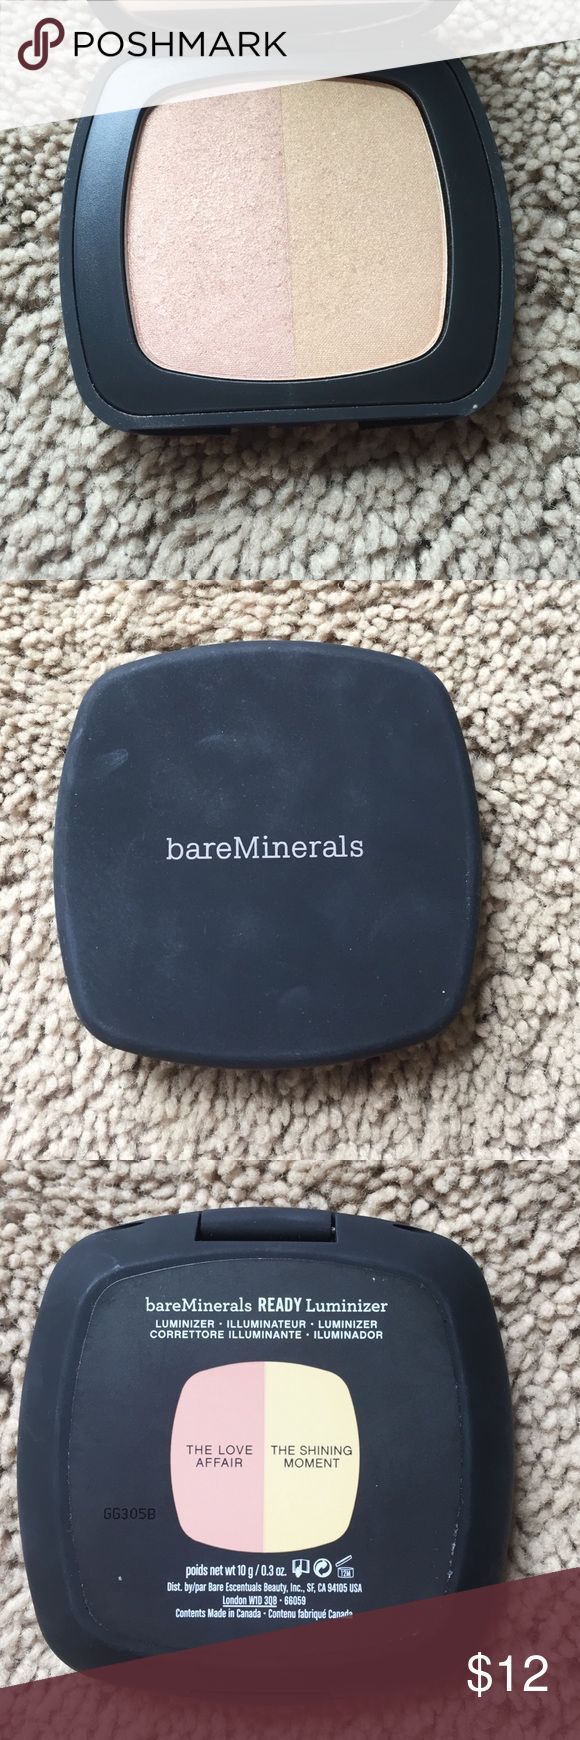 Bare minerals pressed highlighter duo Light, natural looking highlighter/luminizer. One pink toned one gold toned. Swatched only bareMinerals Makeup Eyeshadow